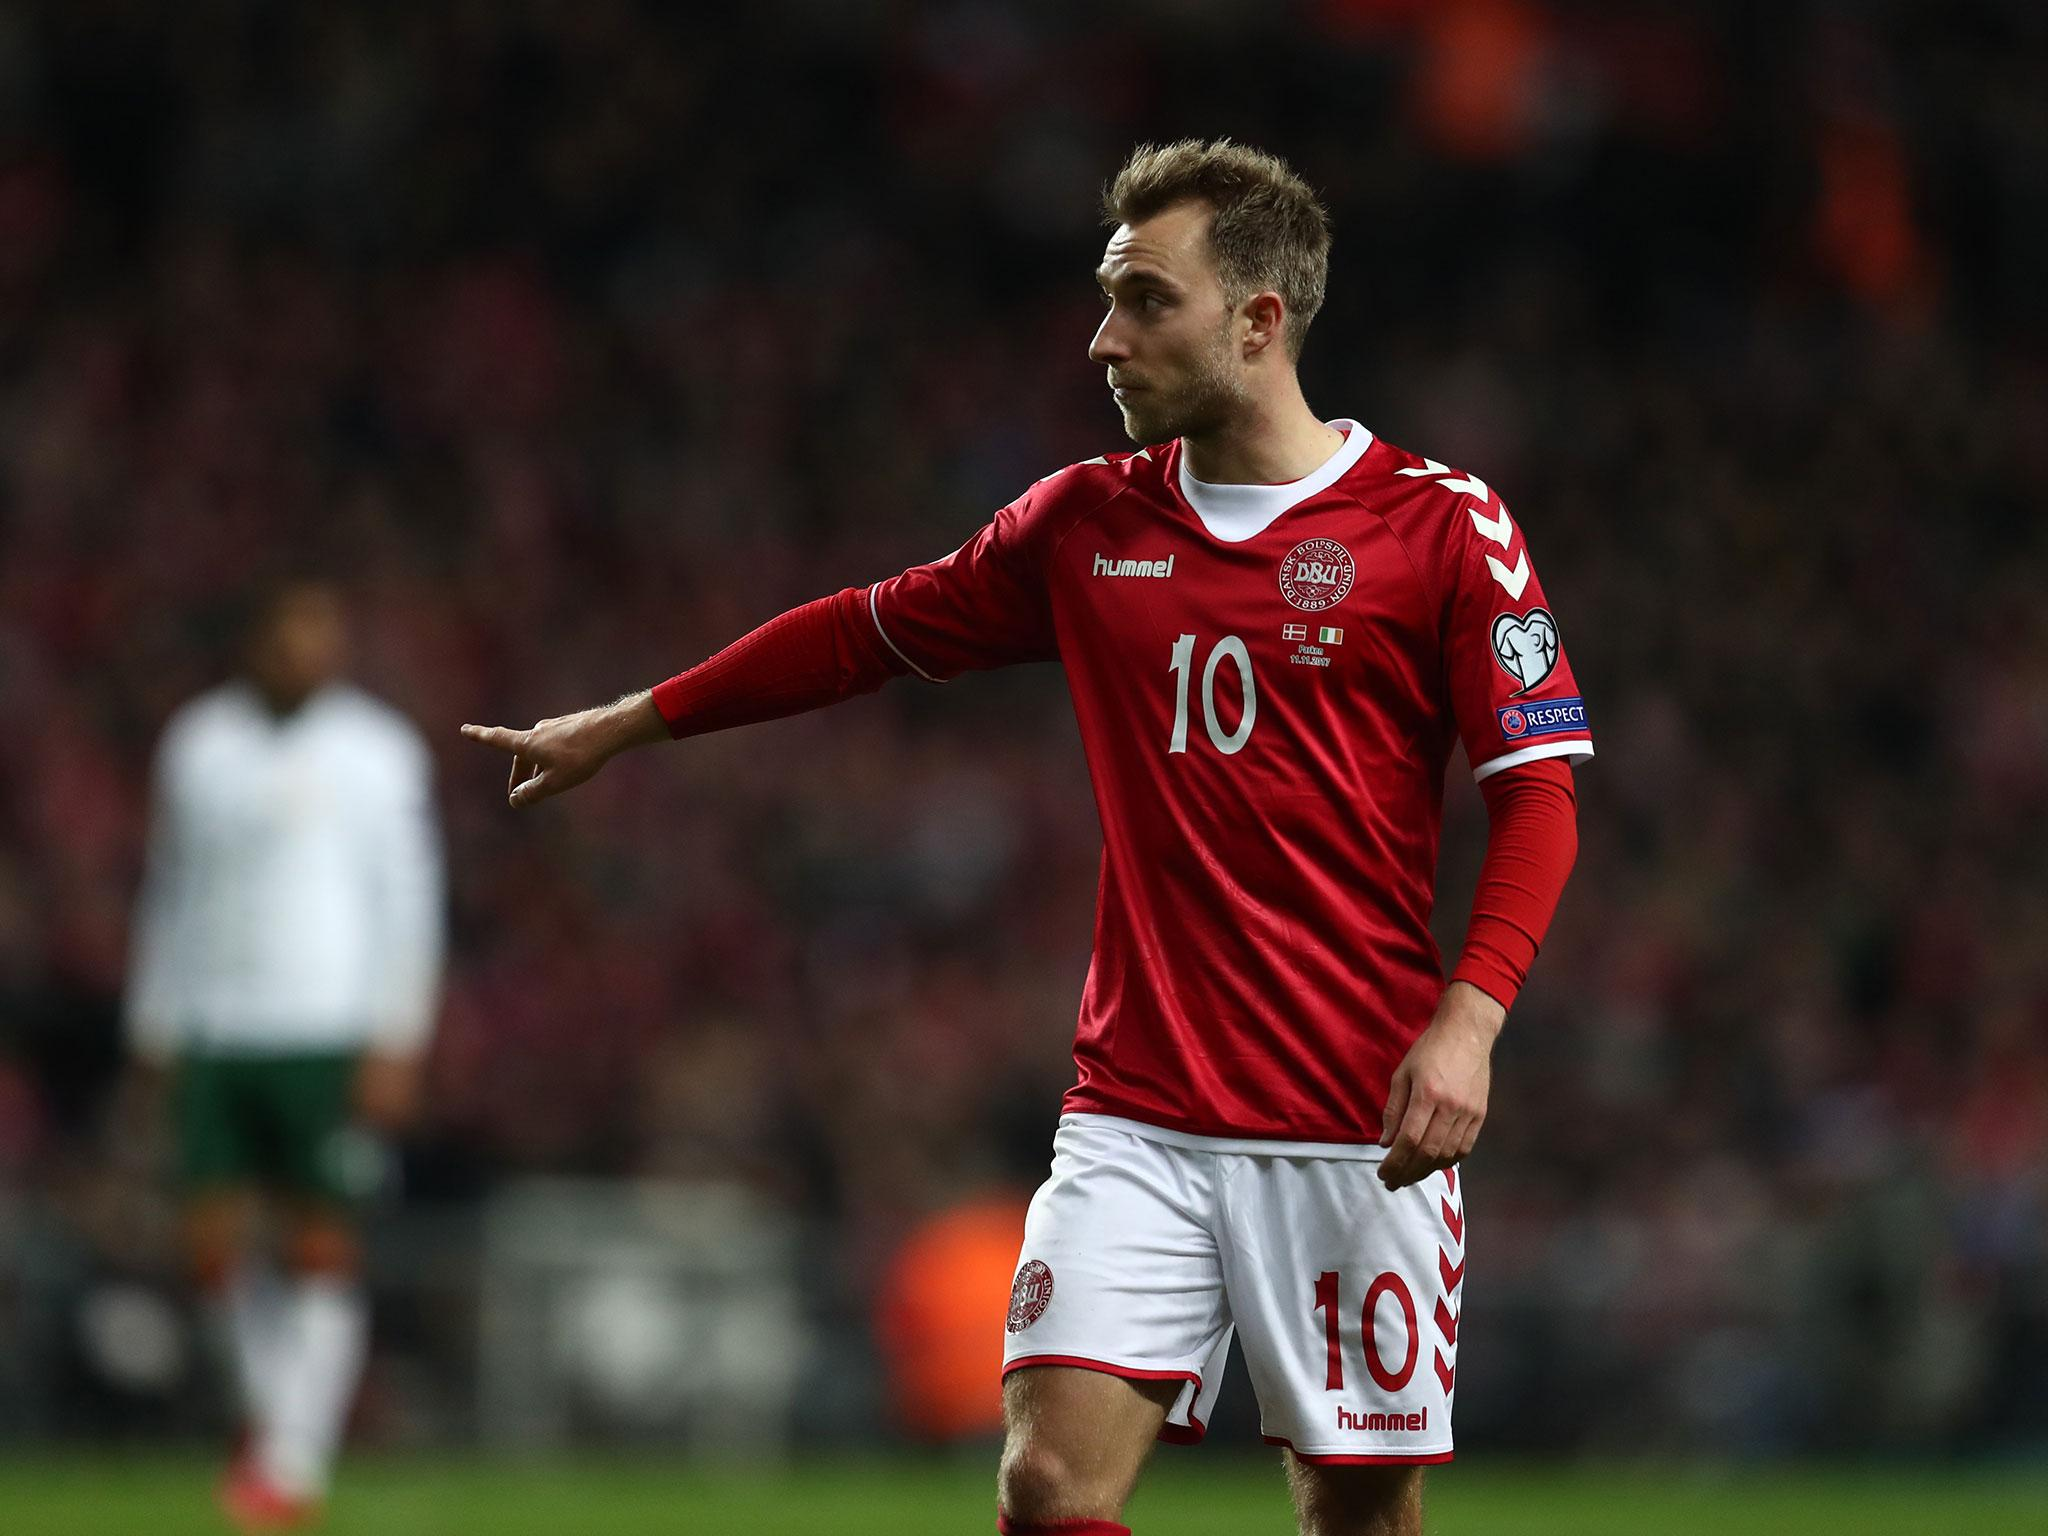 Denmark s World Cup hopes hang in the balance but does Christian